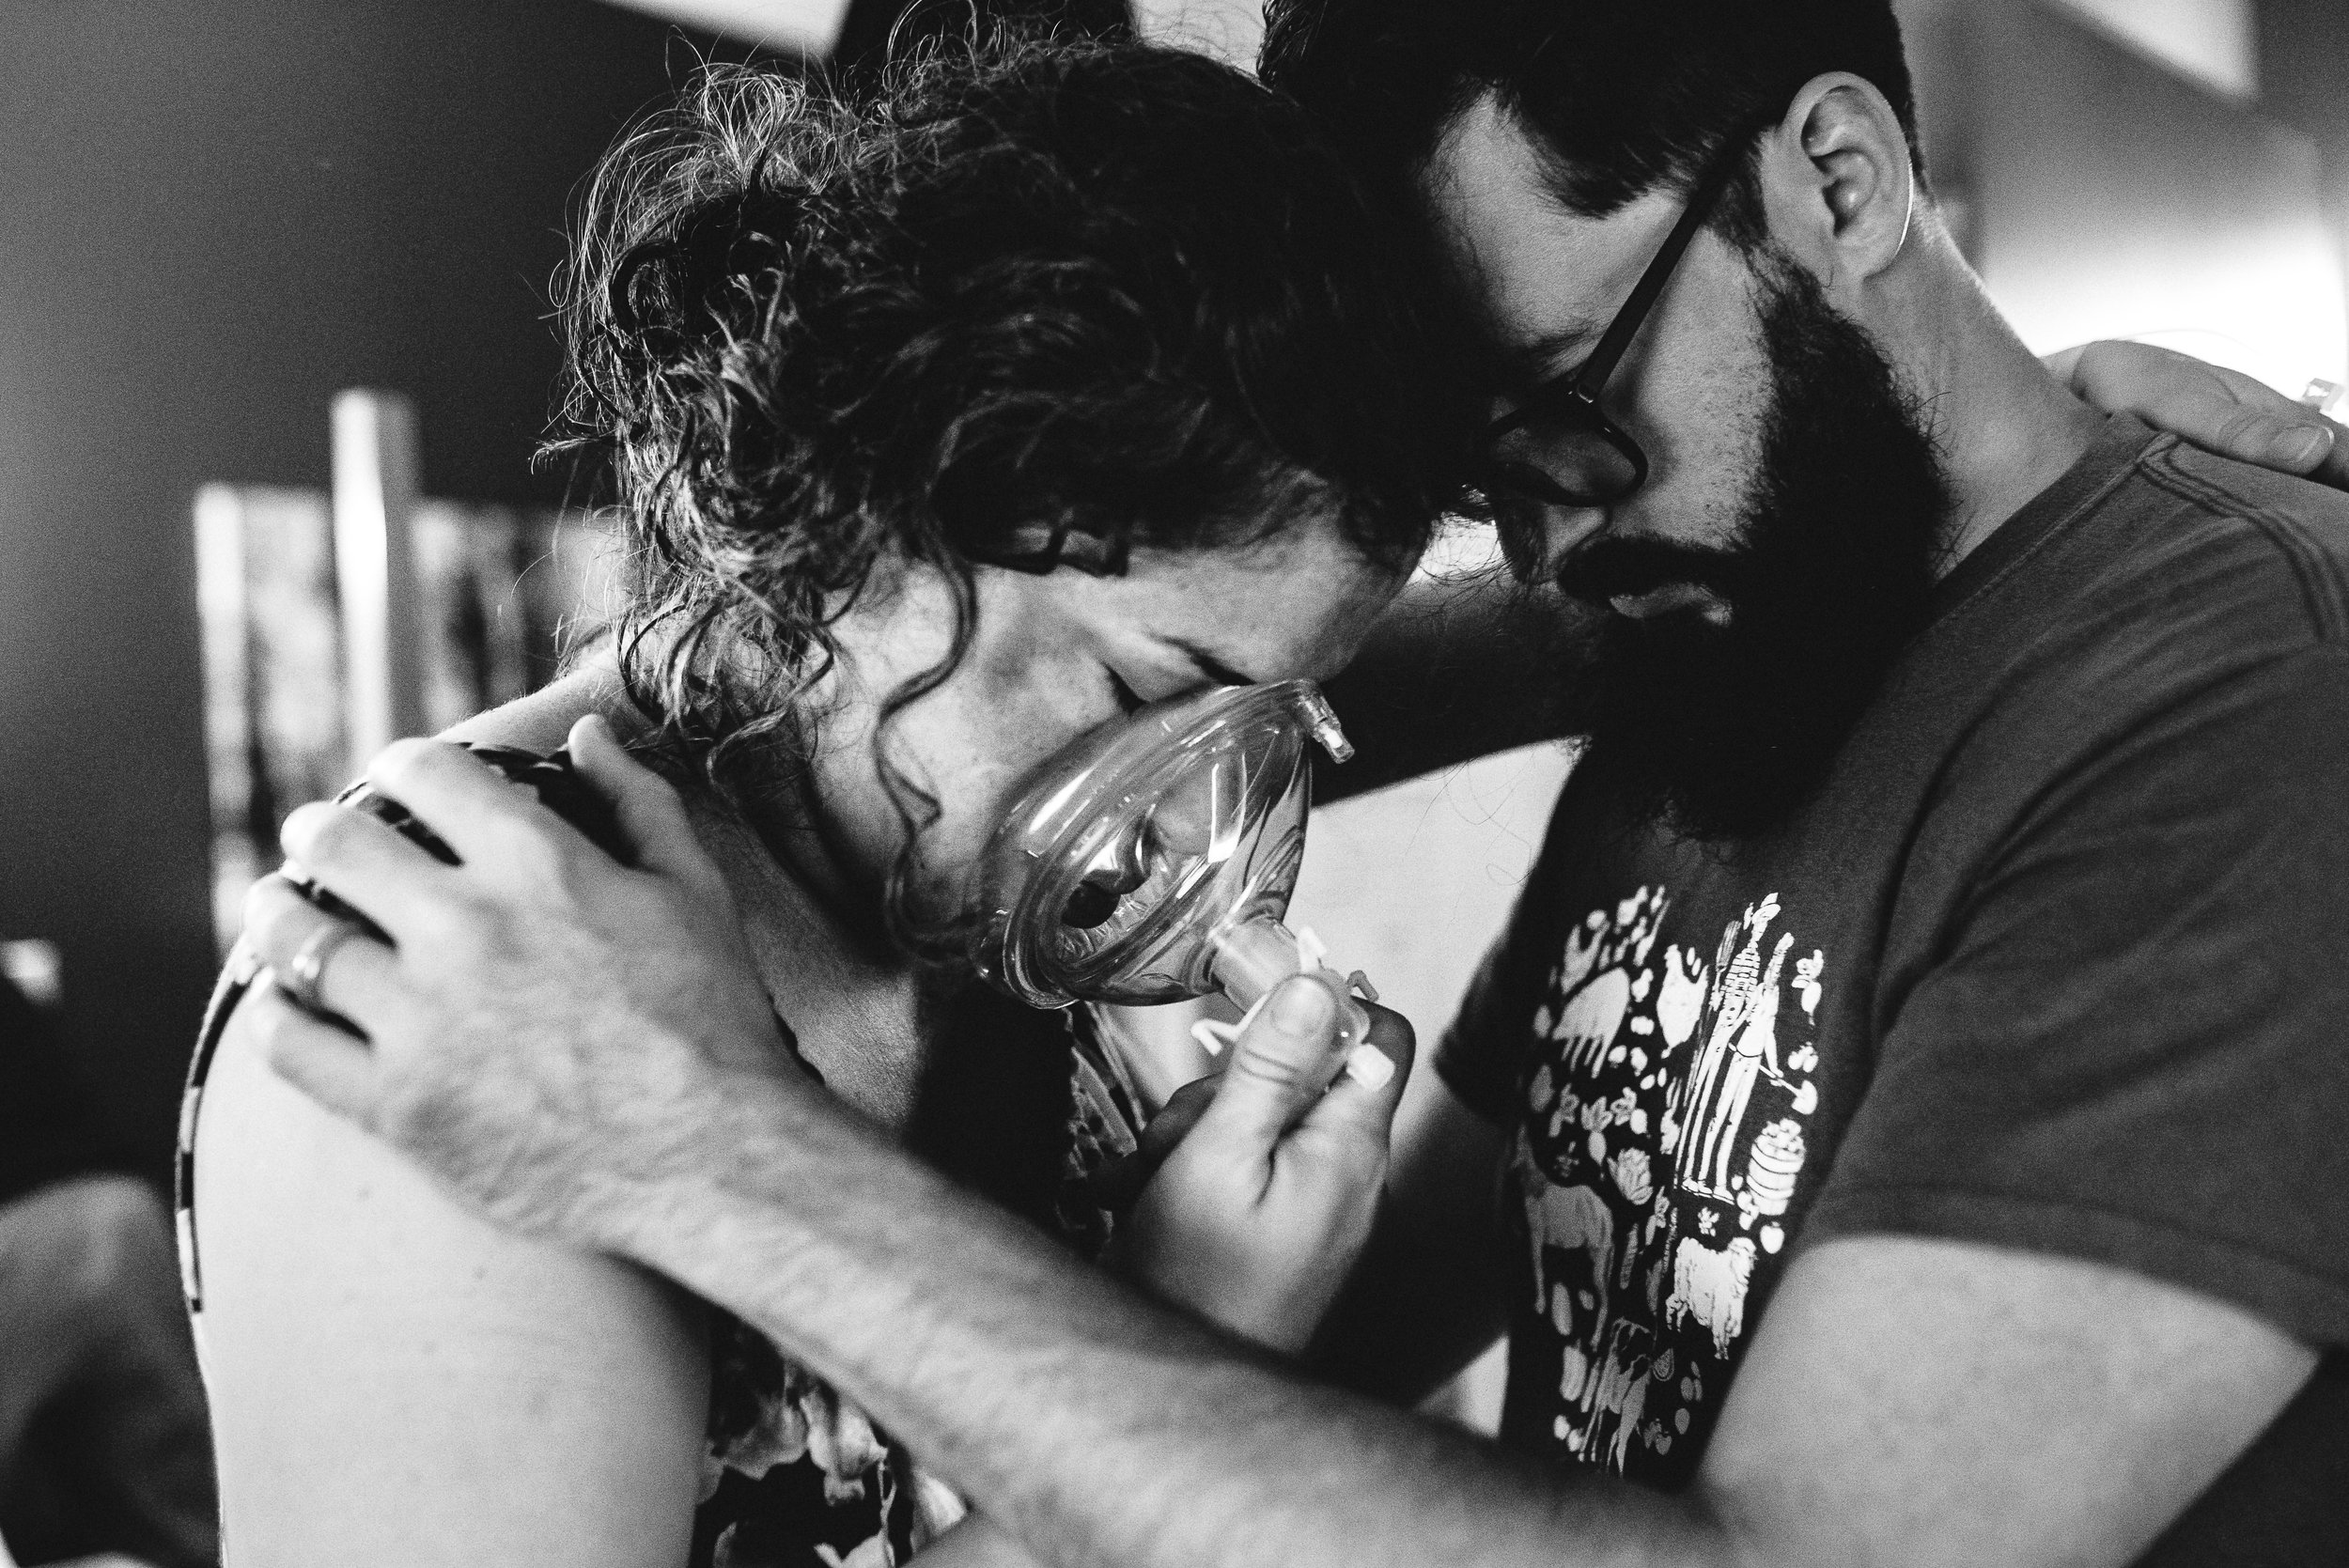 Intimate tender moments between this loving couple.